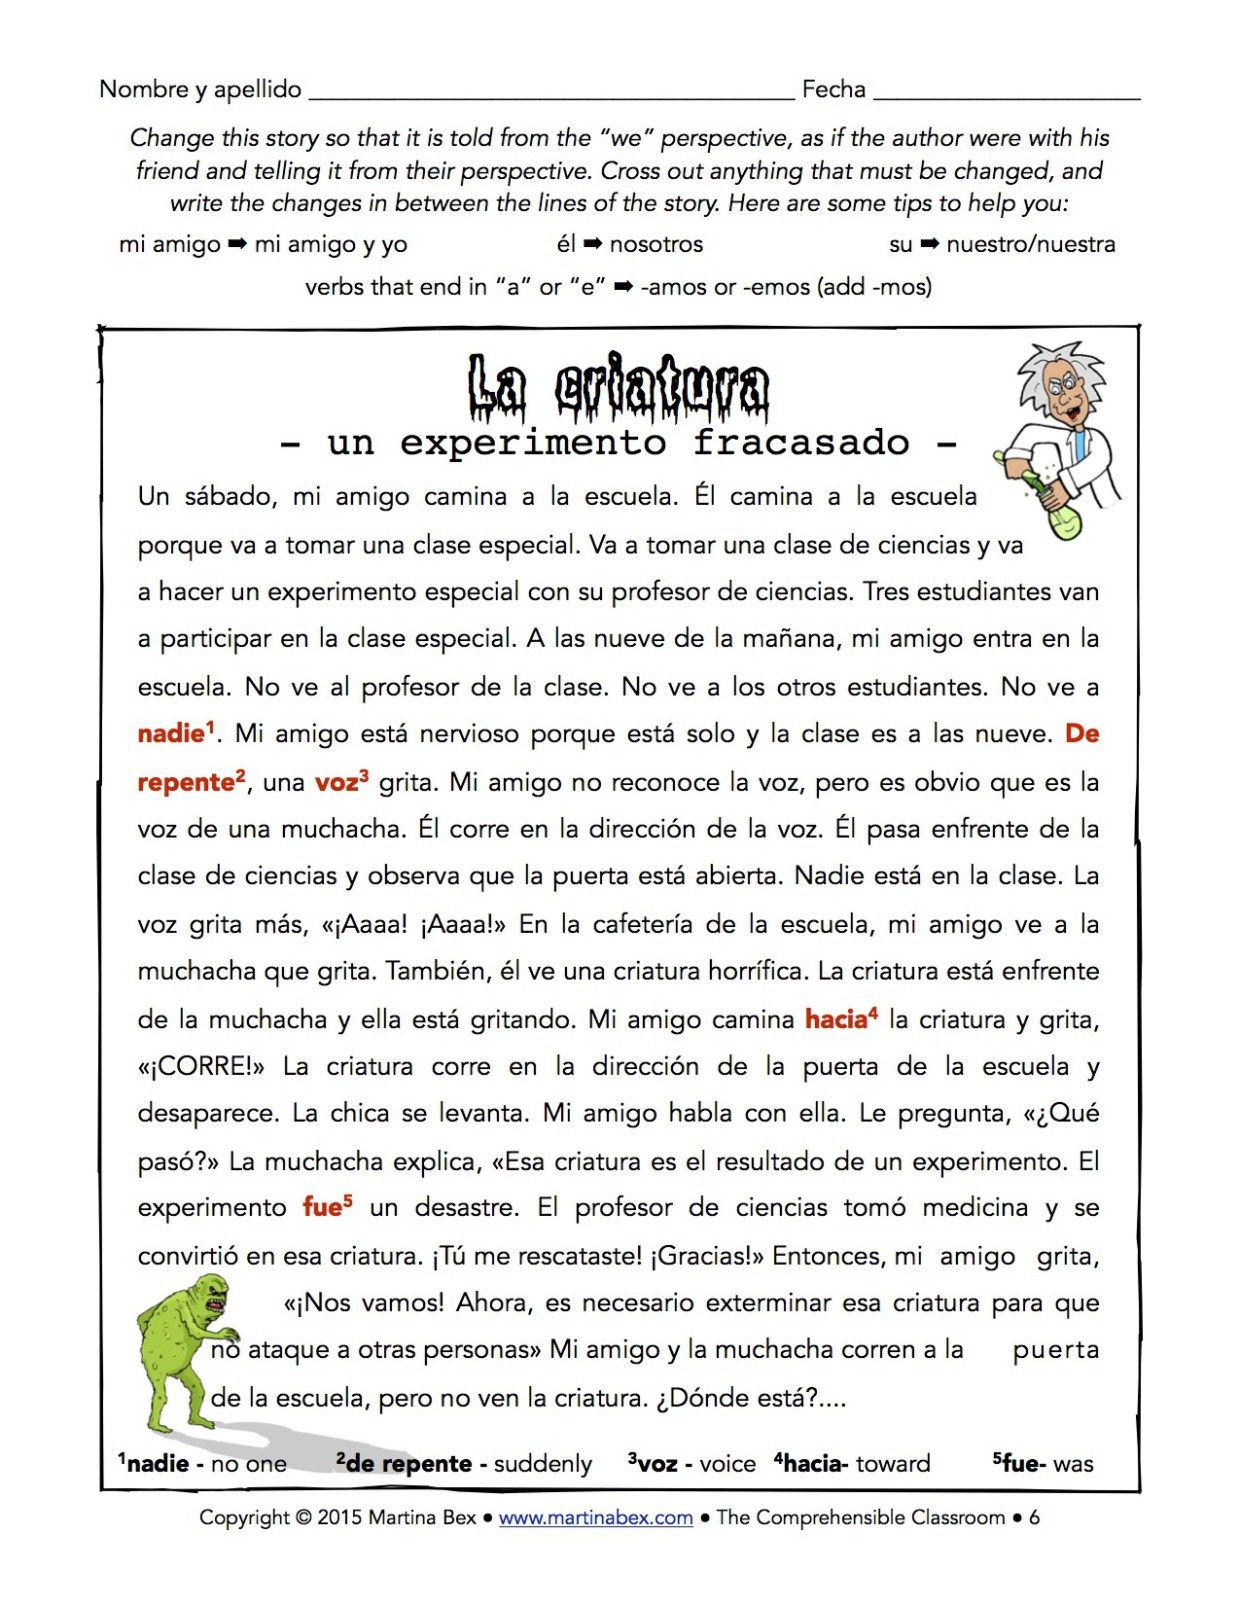 Teaching Other Verb Forms A Reading For Spanish 1 The Comprehensible Classroom Spanish Reading Comprehension Spanish Teaching Resources Spanish 1 [ 1604 x 1240 Pixel ]